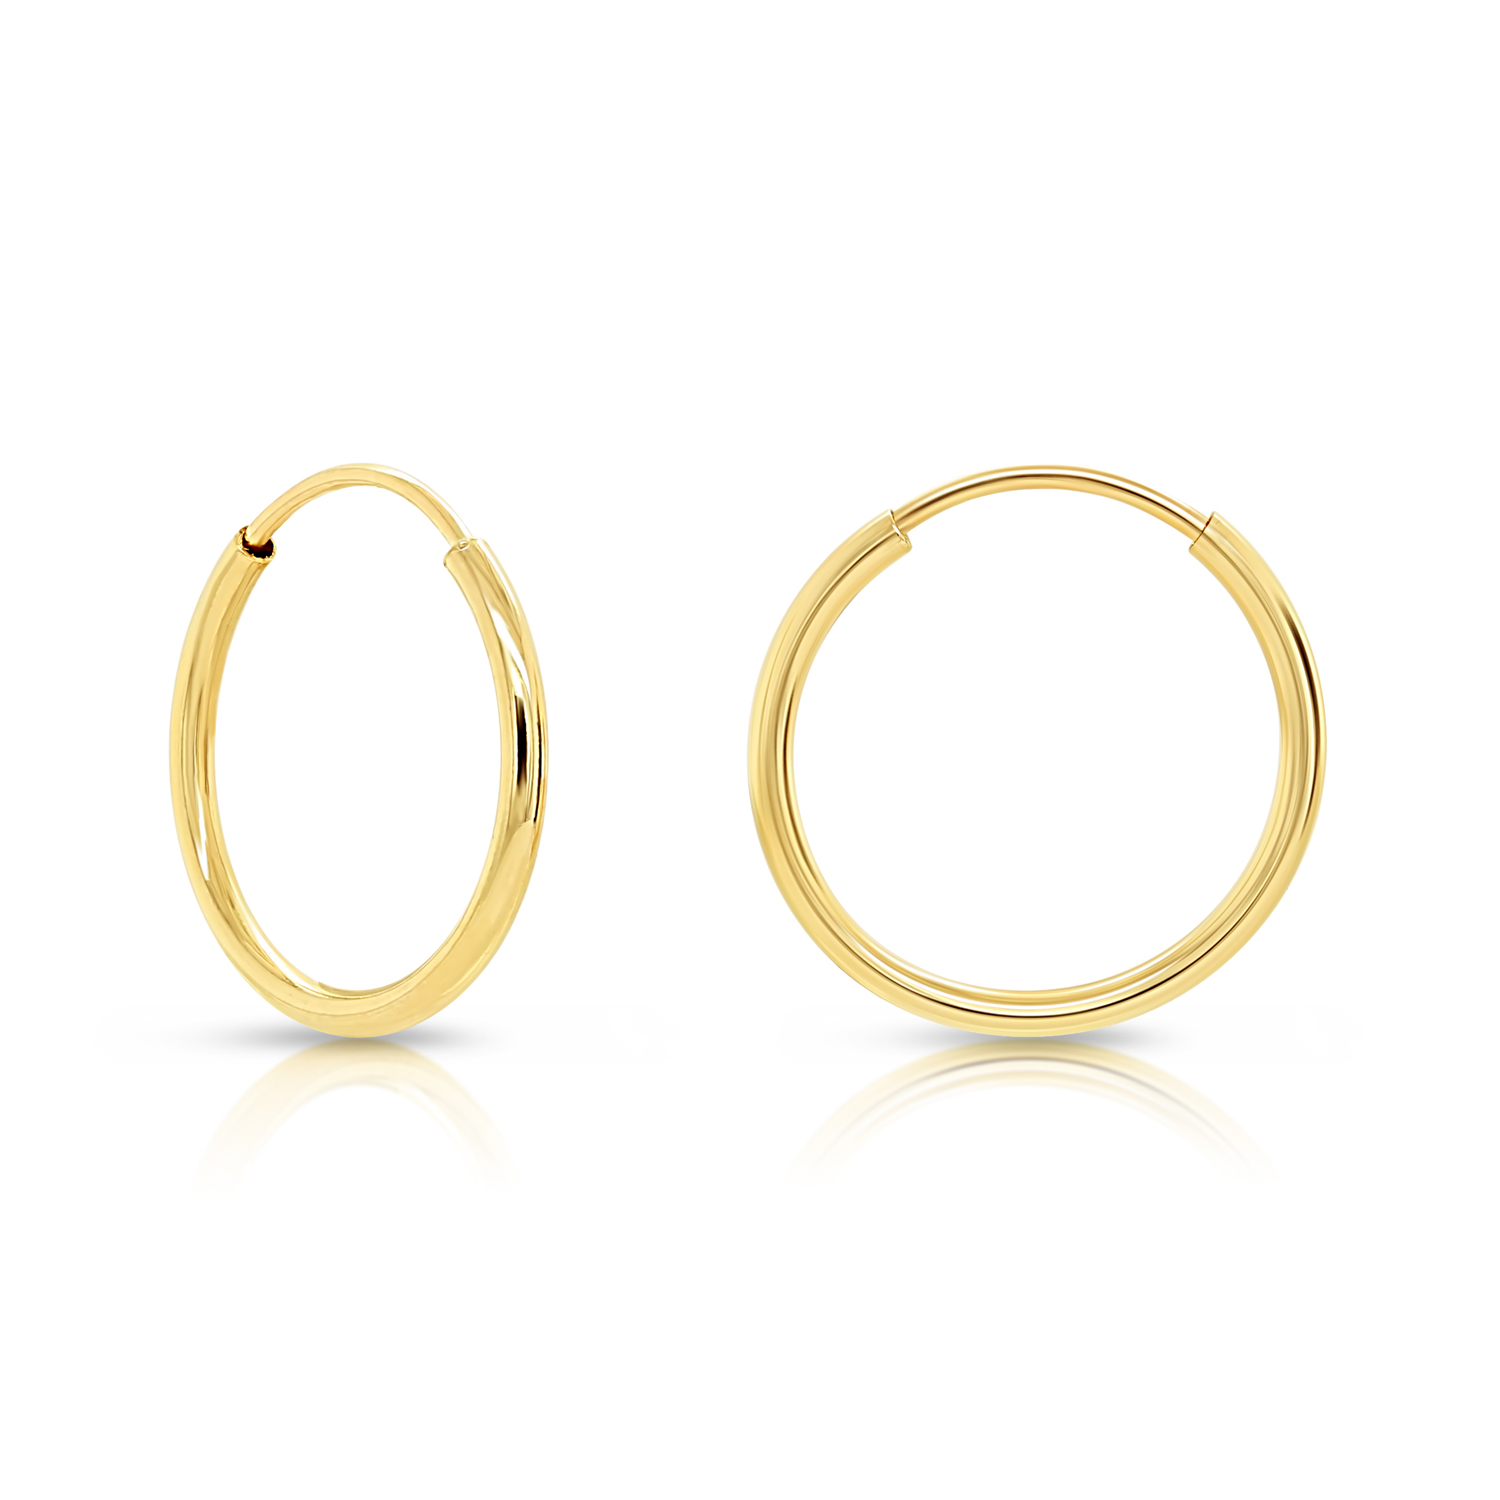 Classic Hoop Earrings 10K or 14K Solid Gold Earrings Kids or Adult in Yellow Gold Small Hoop Earrings For baby Rose Gold or White Gold